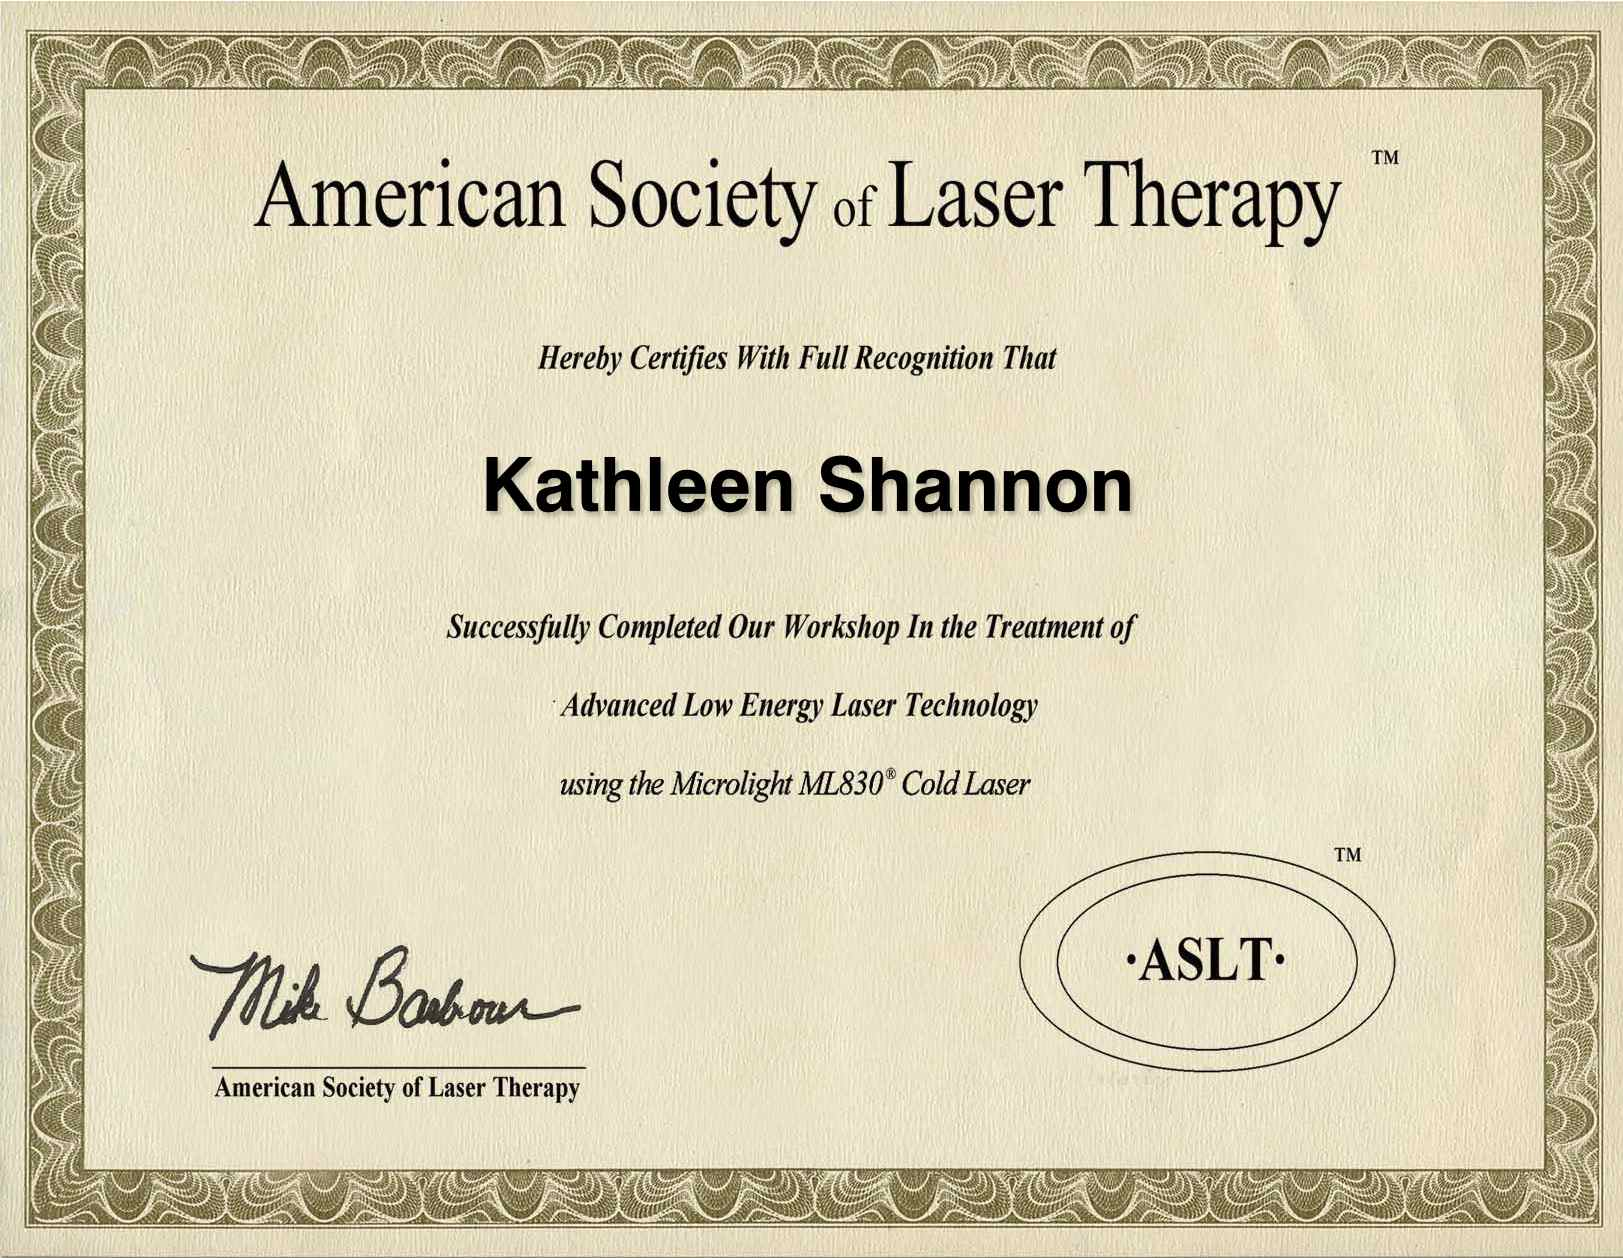 ml830 cold laser certificate